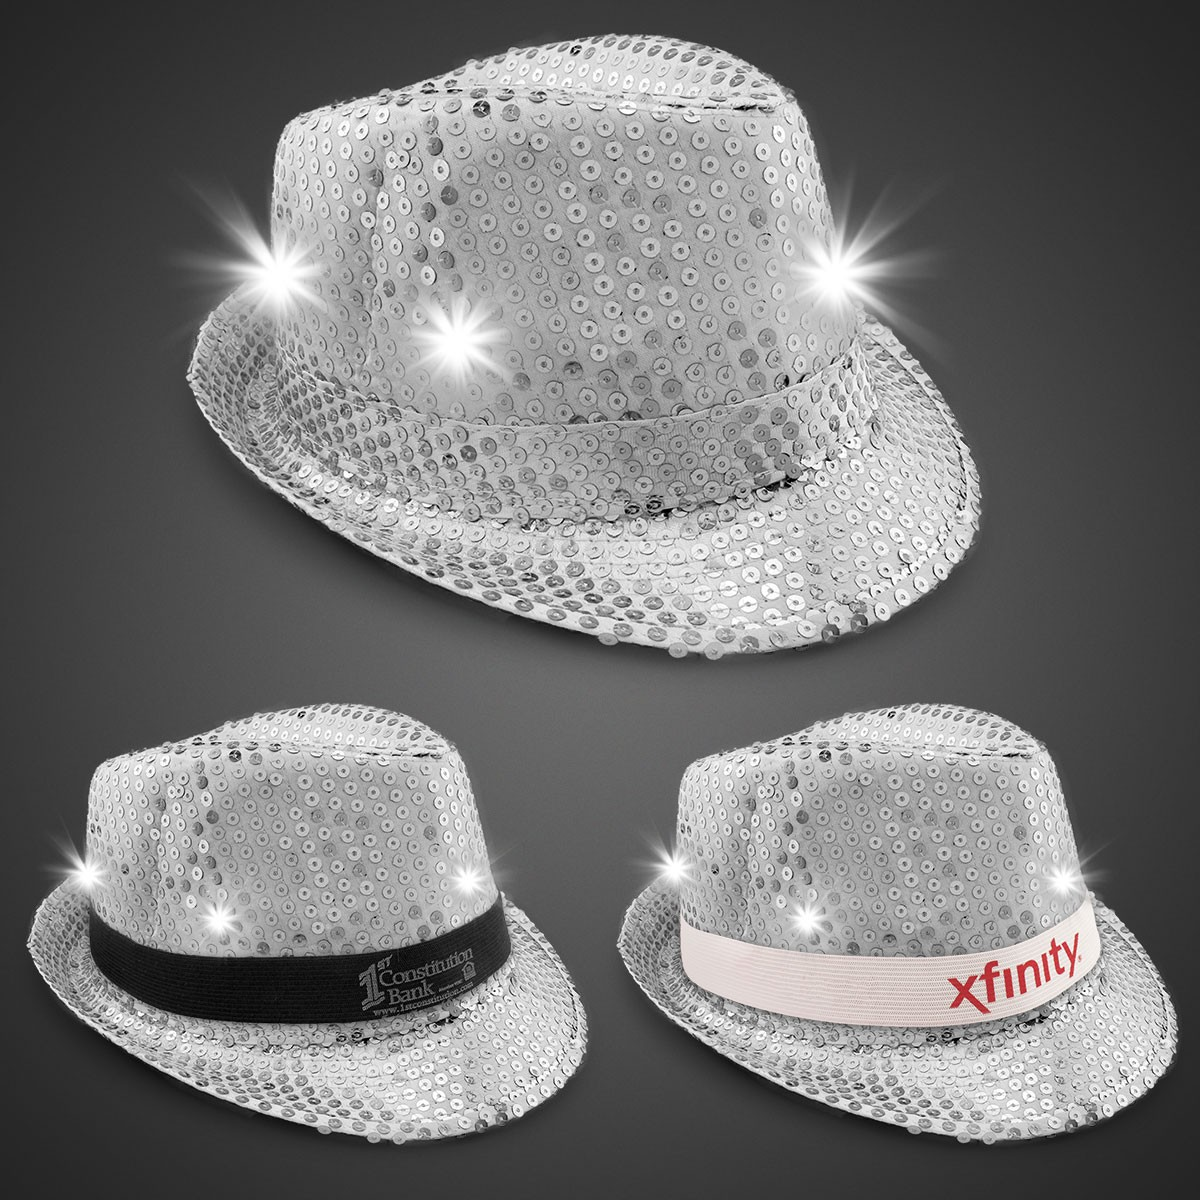 Silver Sequin LED Fedora Hats (Imprintable Bands Available)